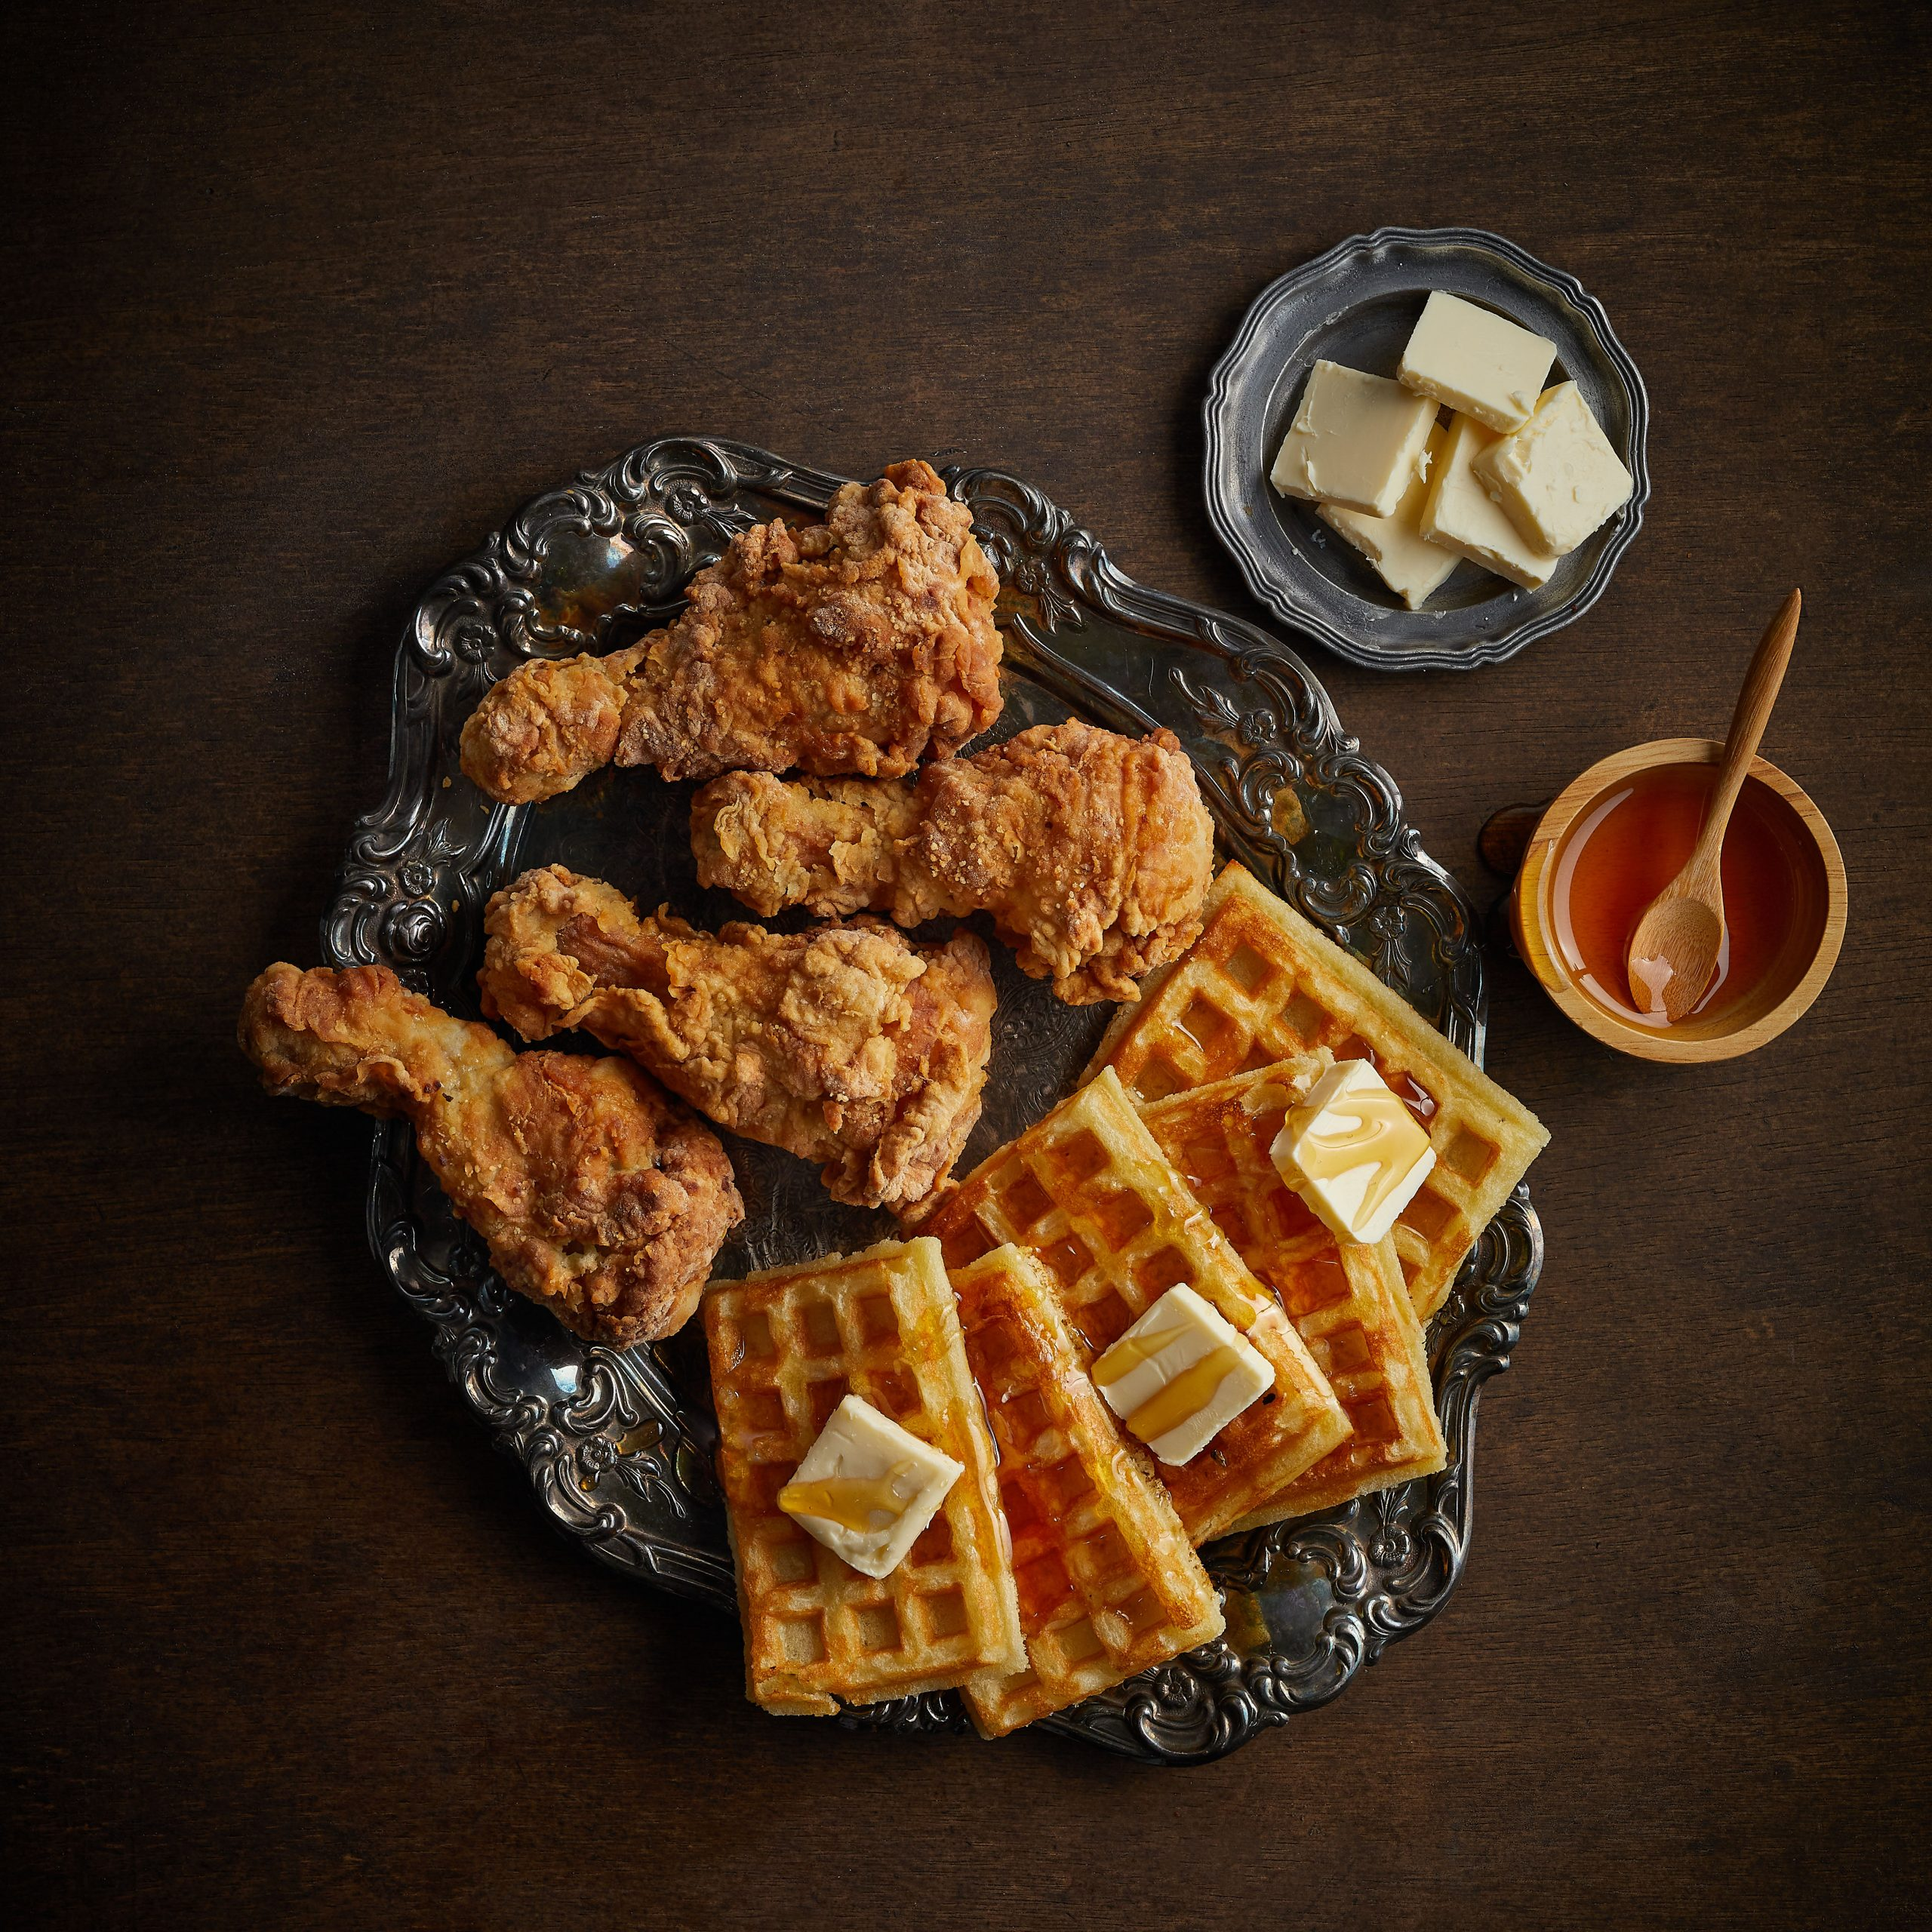 Buttermilk Waffle and Fried Chicken